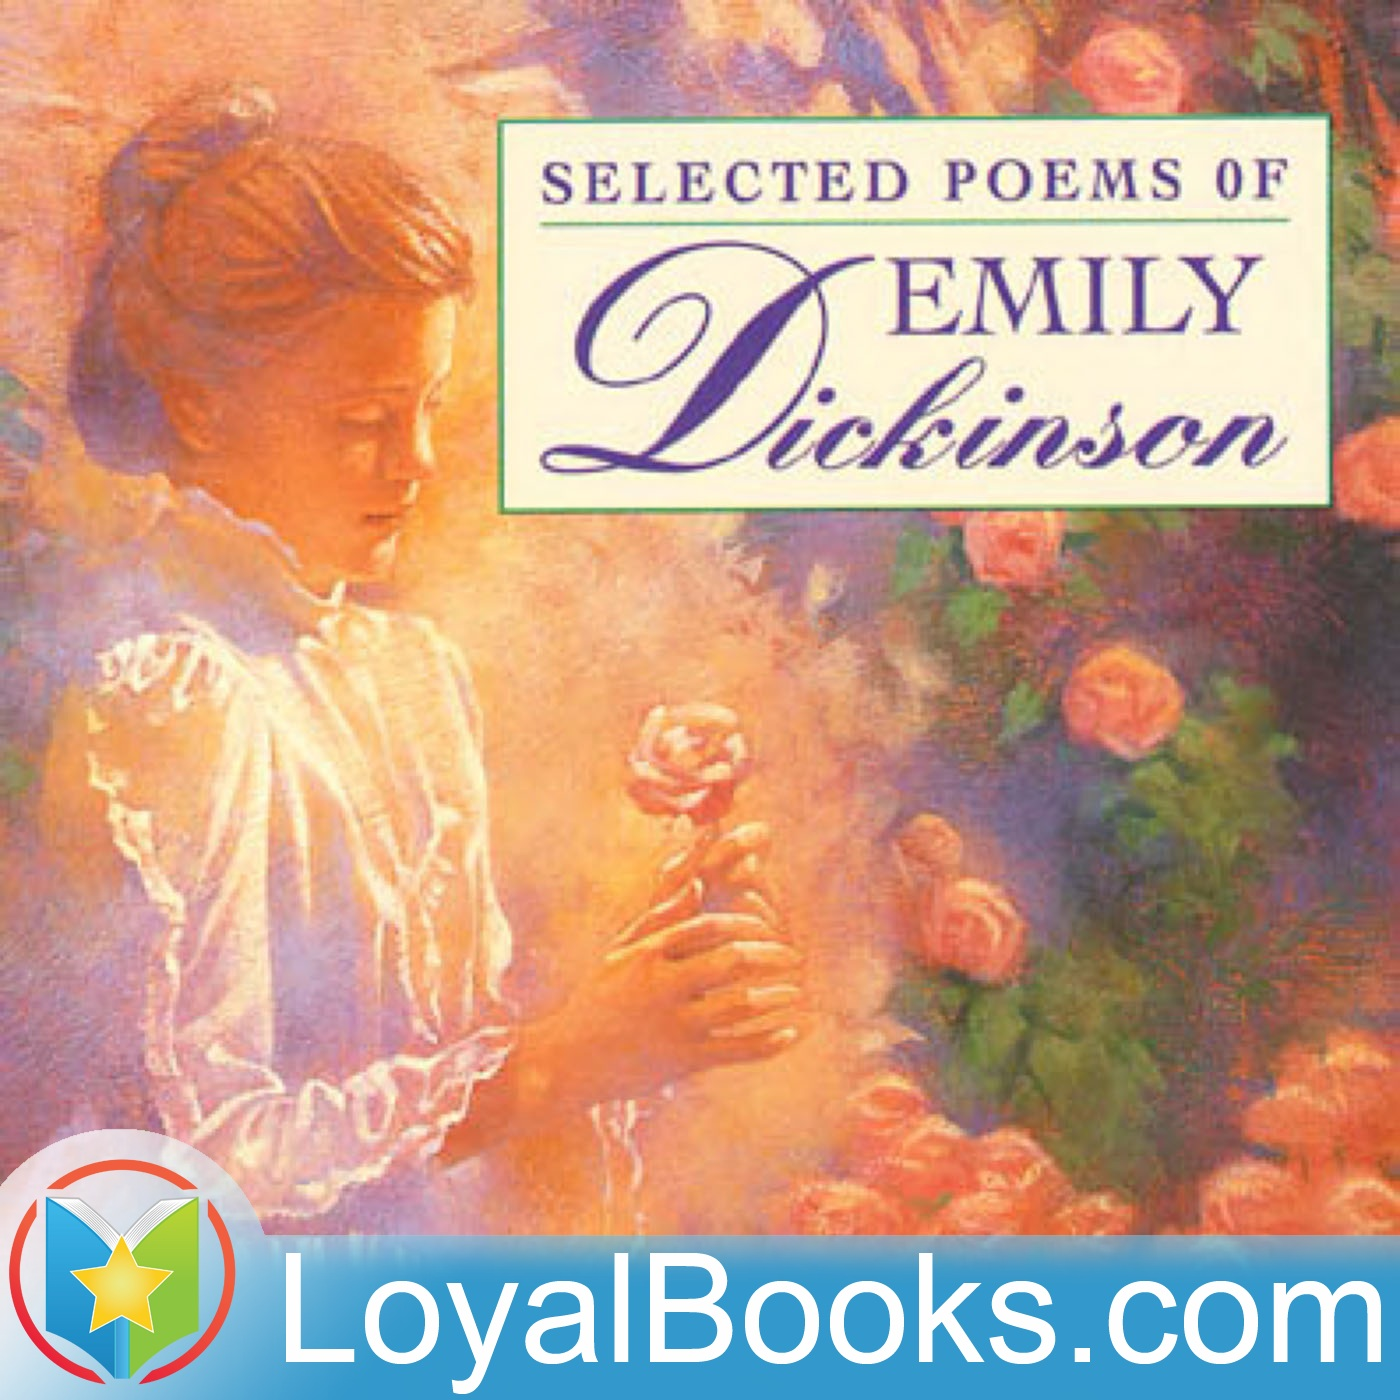 <![CDATA[Selected Poems of Emily Dickinson by Emily Dickinson]]>